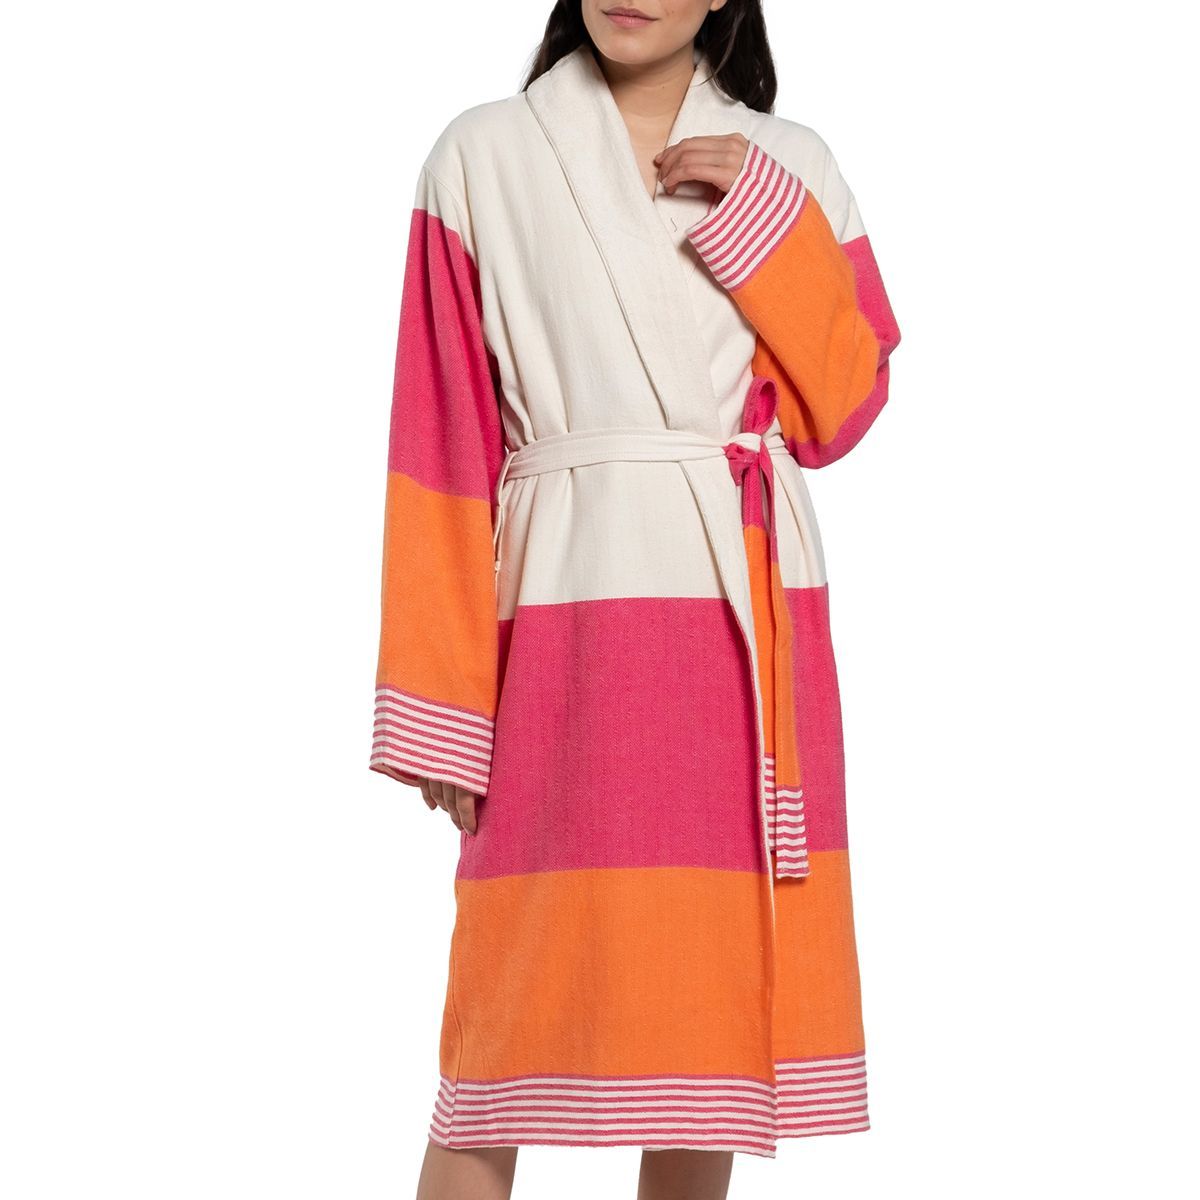 Bathrobe Twin Sultan with towel / Fuchsia - Orange